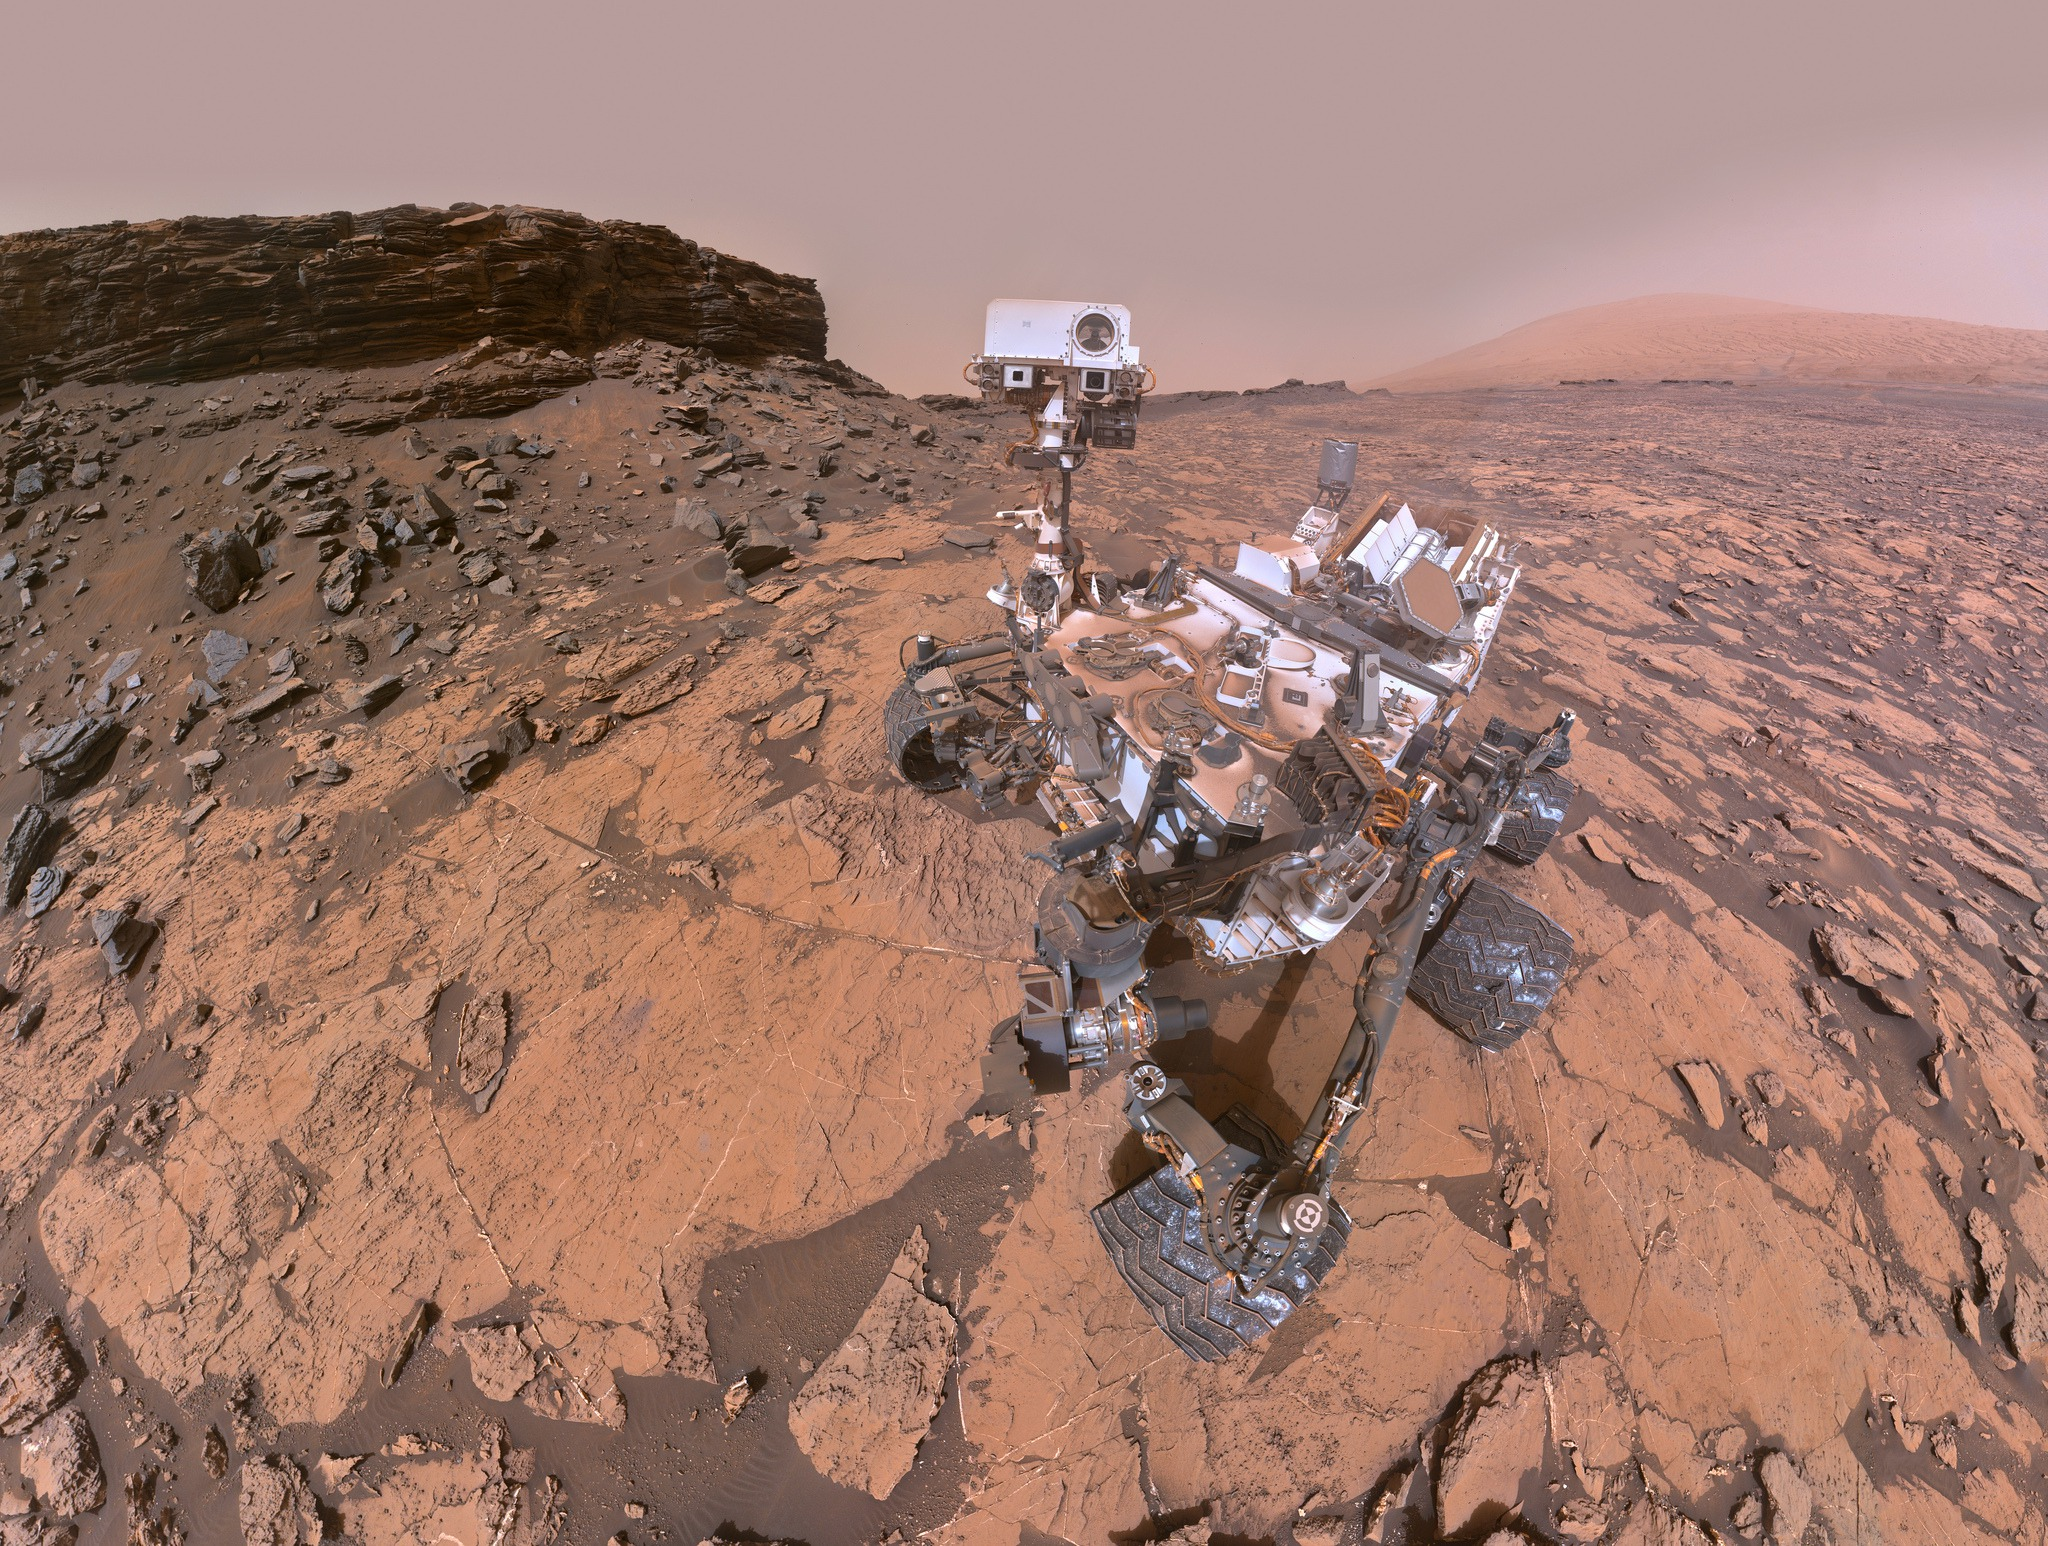 curiosity mars rover pictures - HD 1920×1200